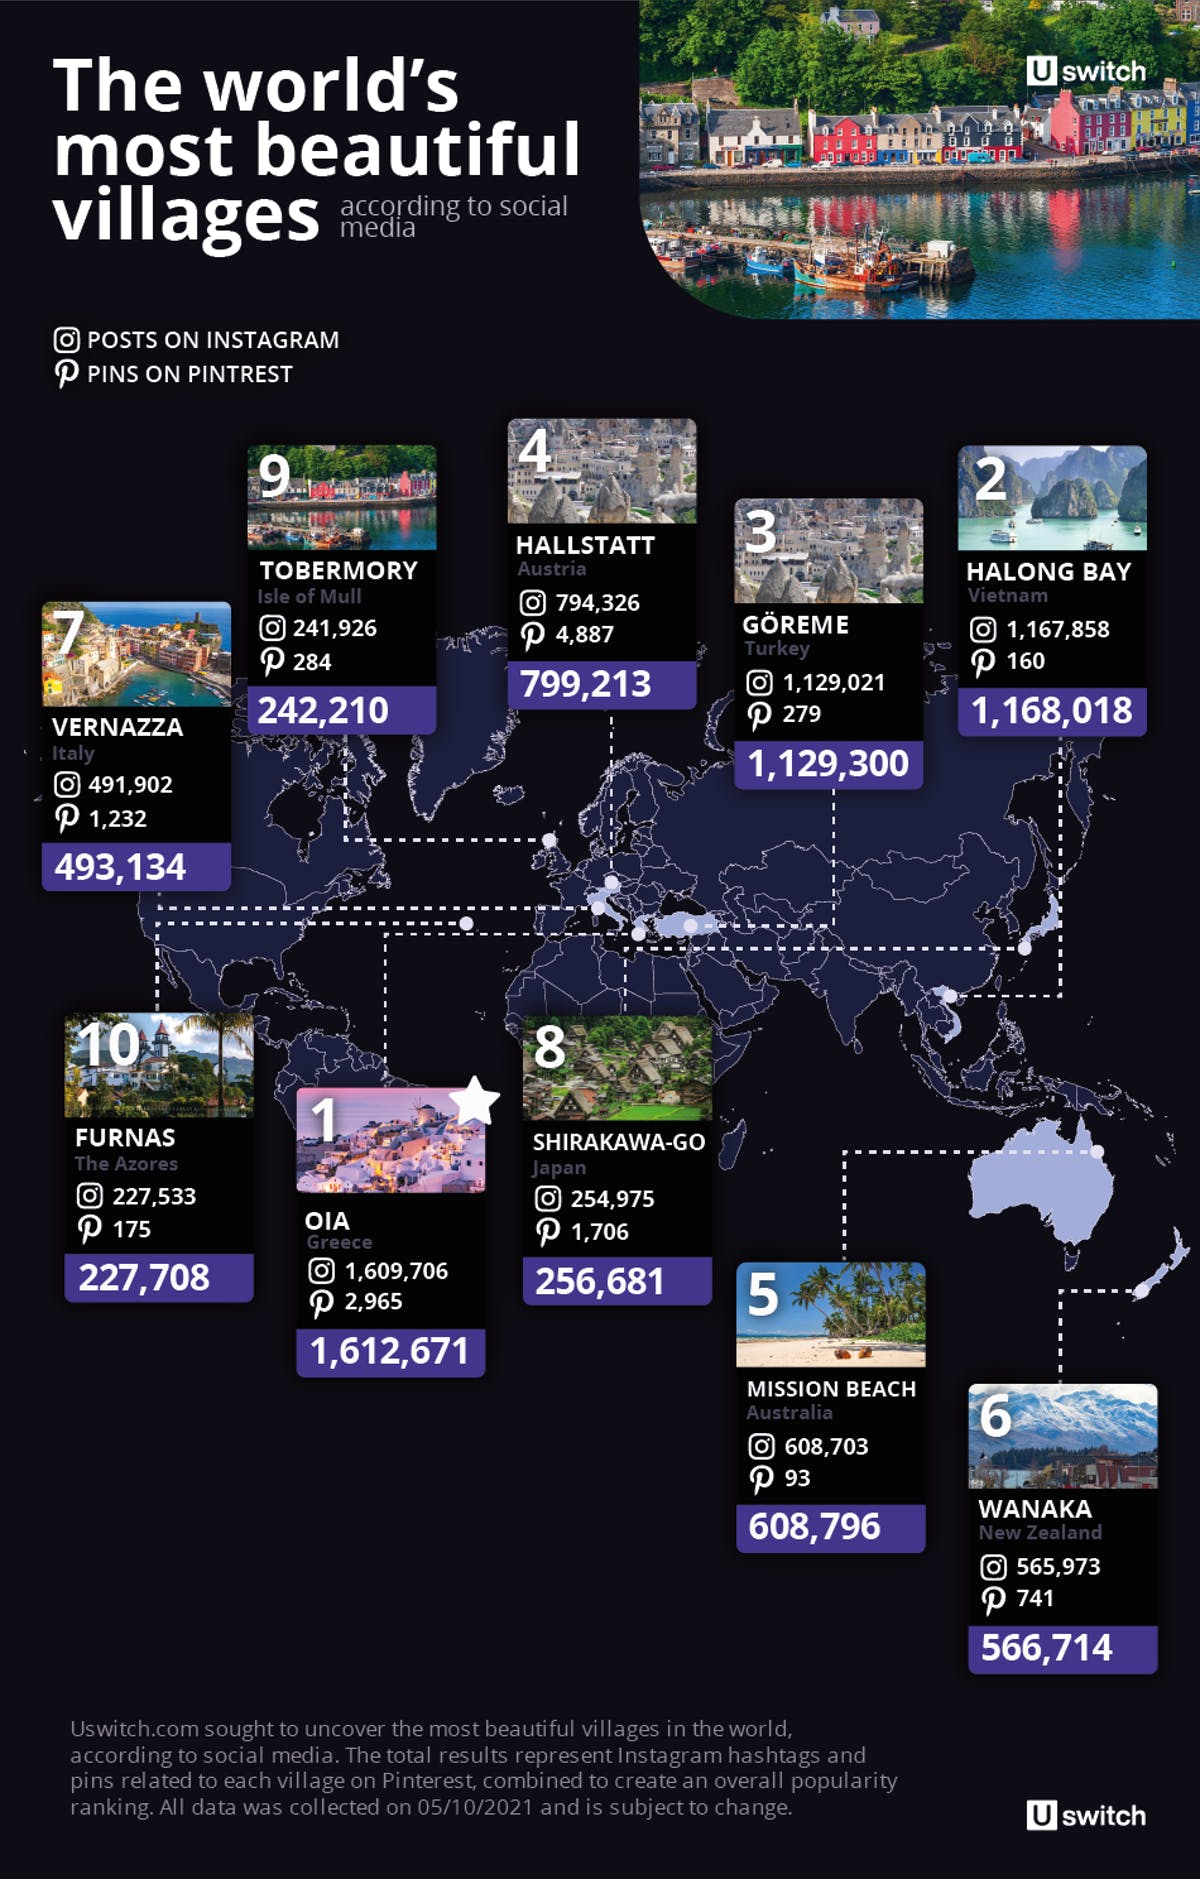 The world's most beautiful villages map